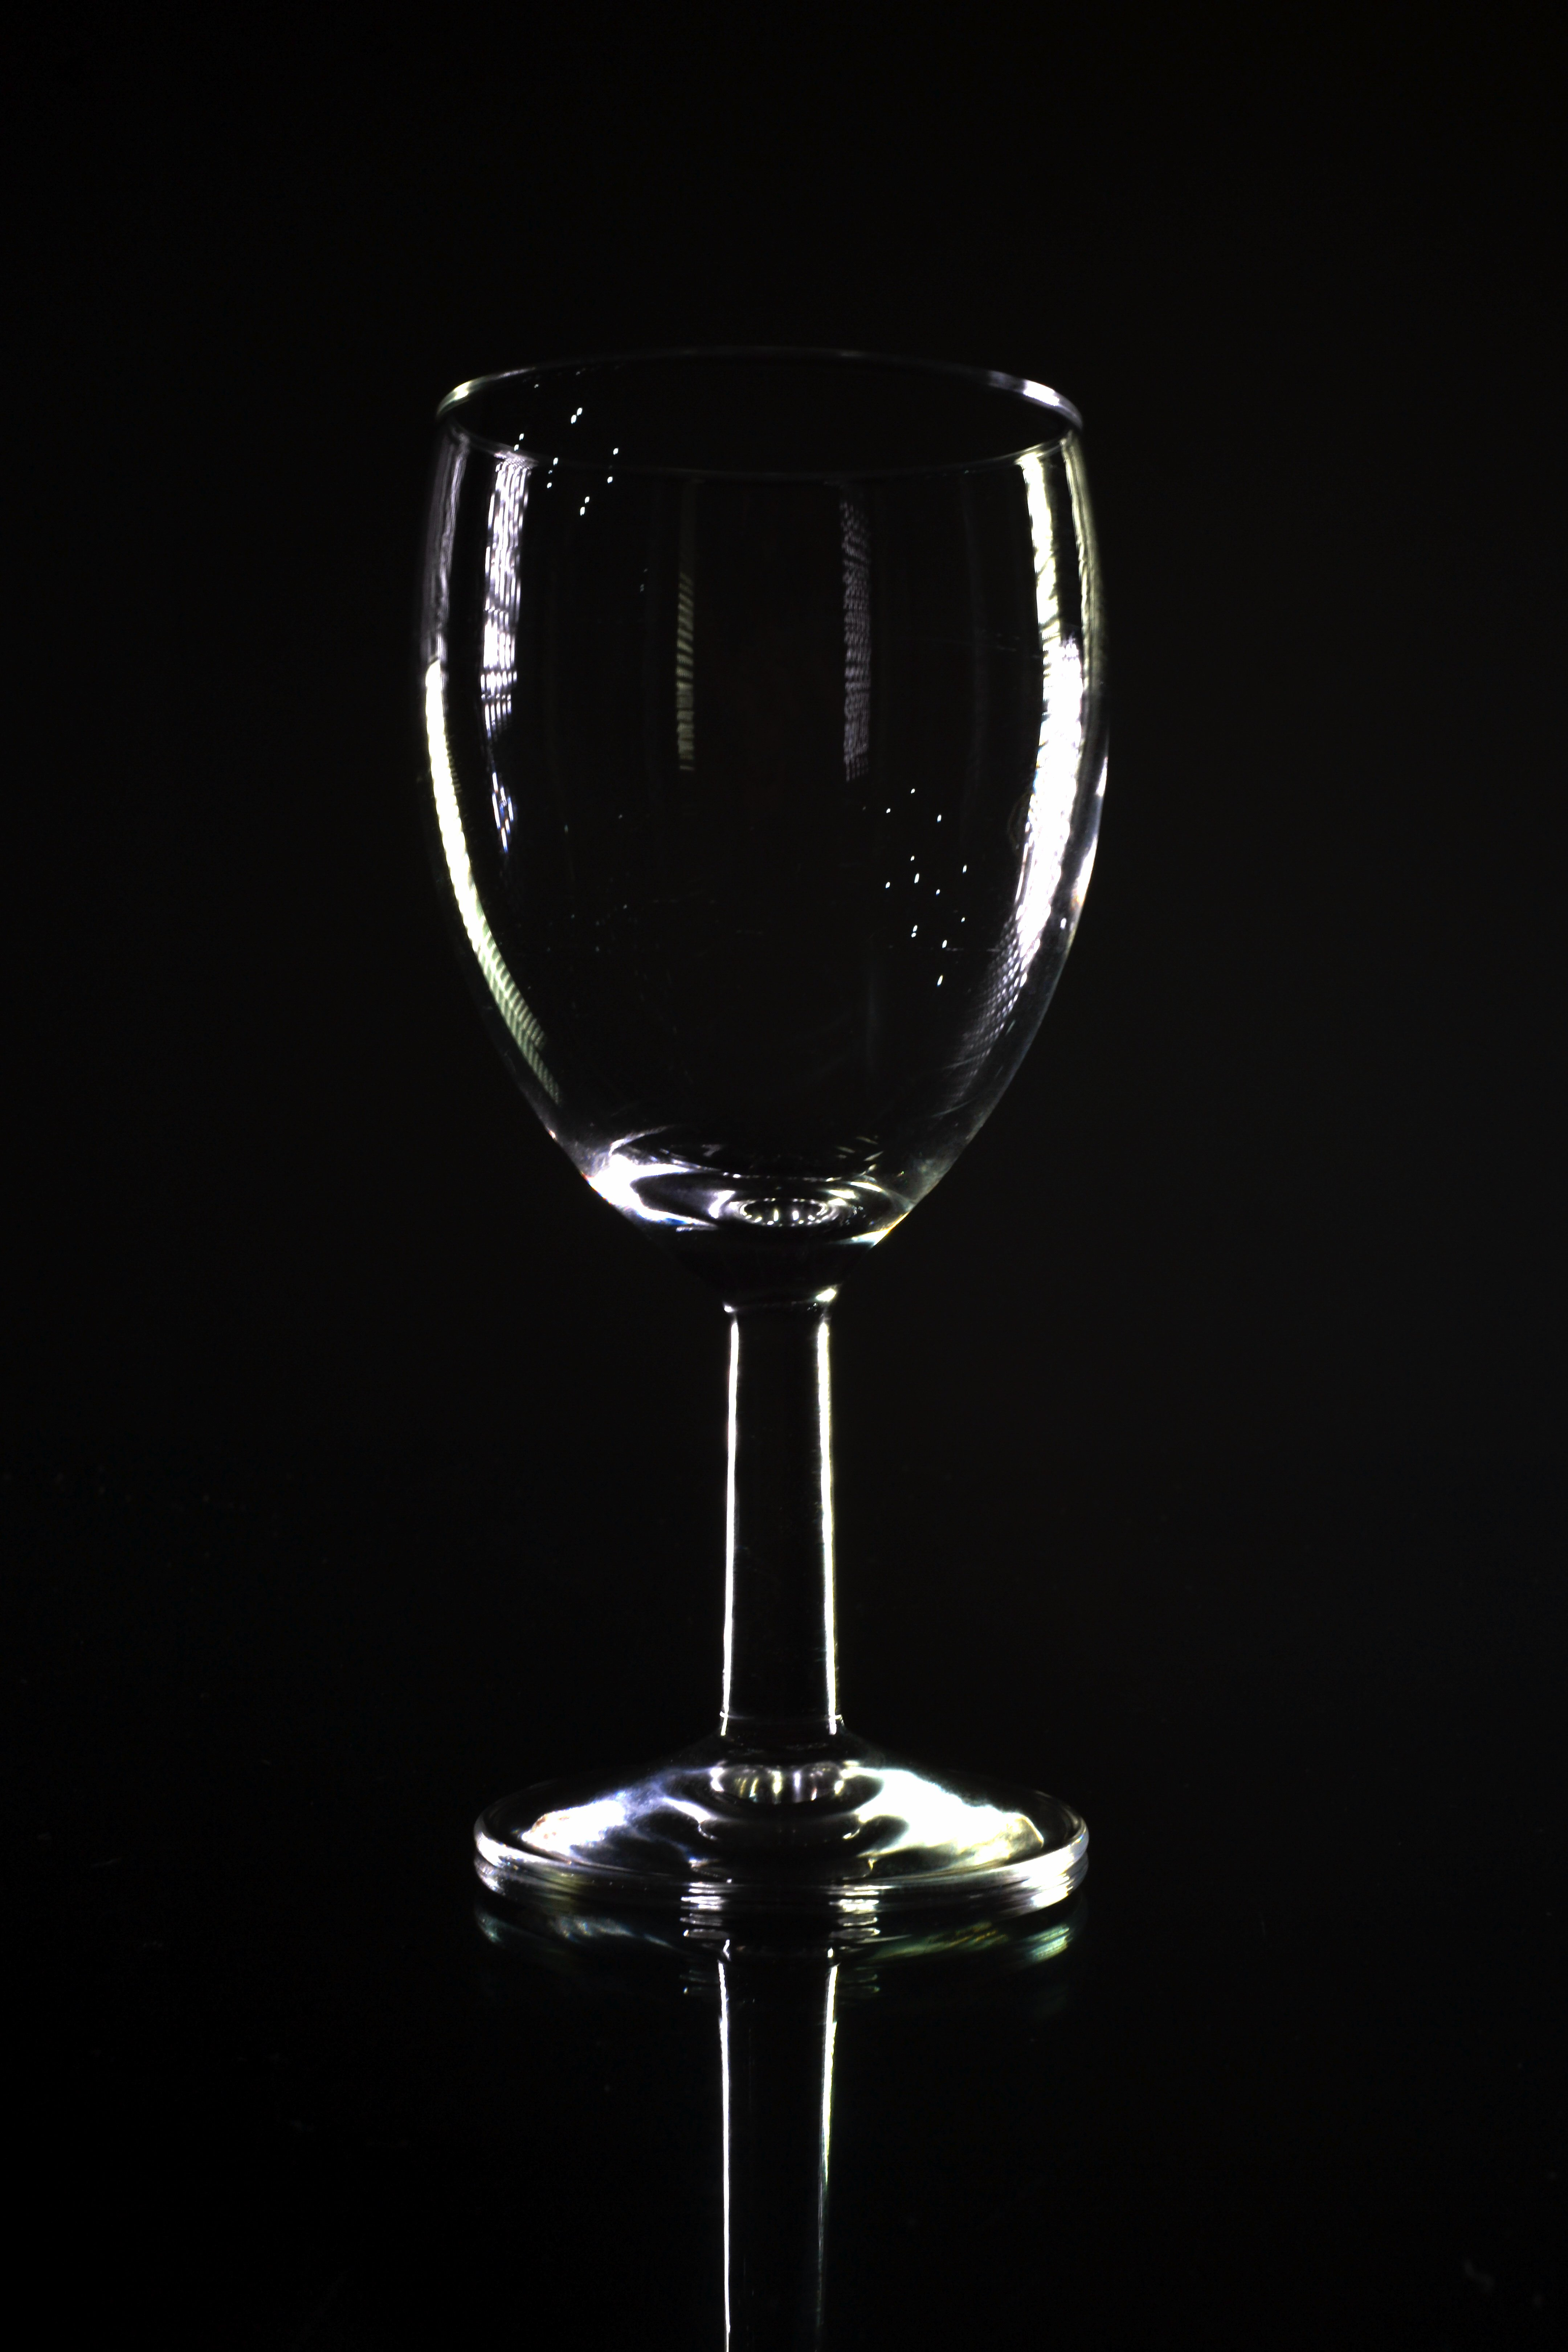 Stock Photo of Empty Wine Glass Shape Outlined with Black ...